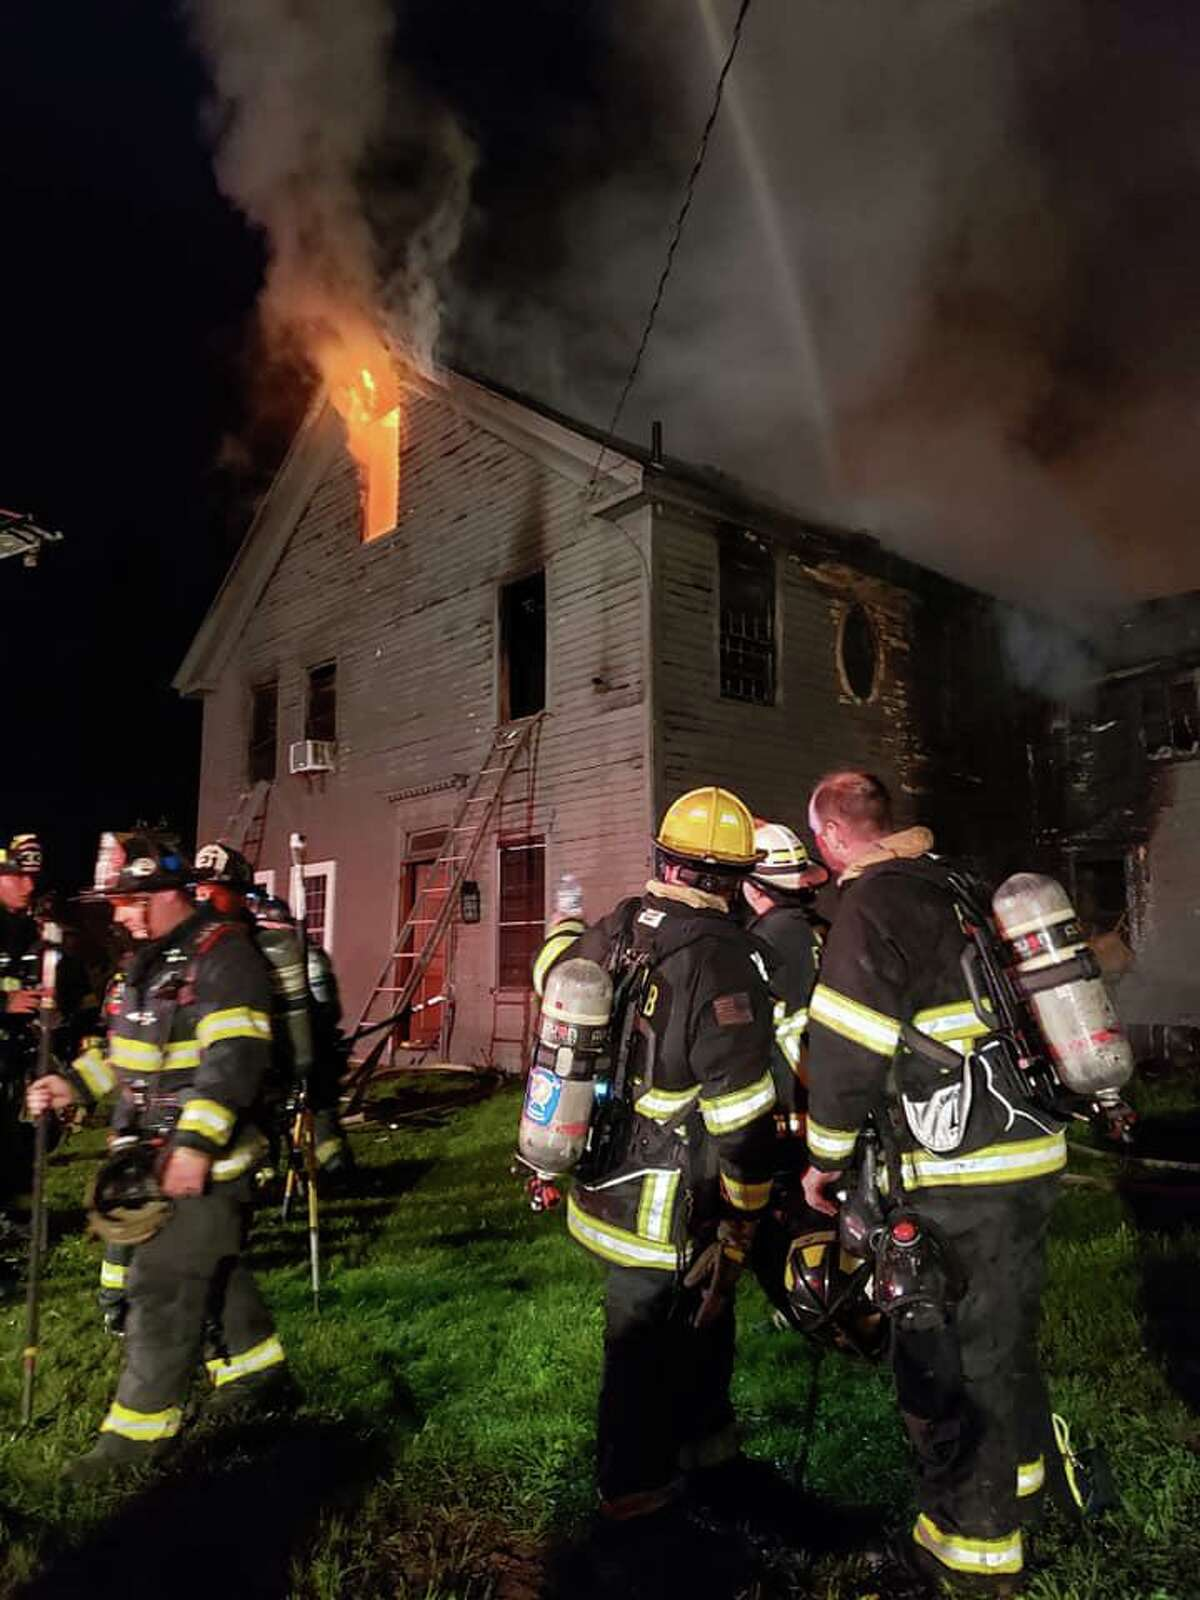 A fire at a farmhouse in Woodstock, Conn., during the early morning hours of Tuesday, June 15, 2021.